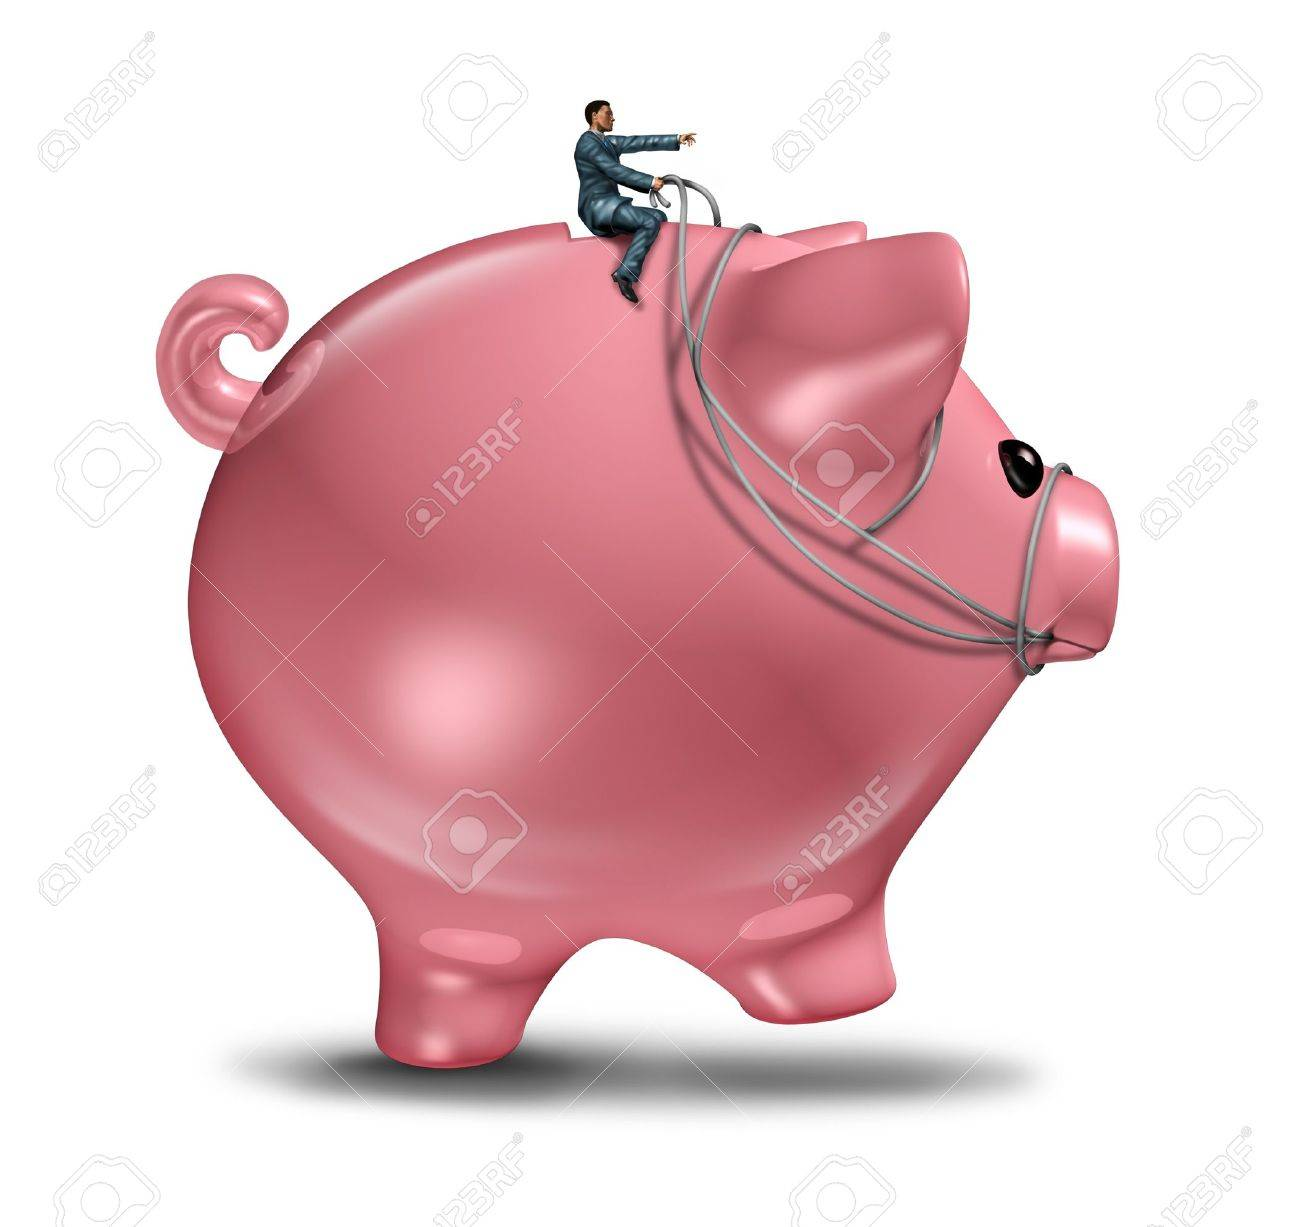 Financial management and wealth consulting business concept as a businessman on a piggy bank  wearing a harness riding and controlling the budget direction of savings and invested money for future wealth success Stock Photo - 21492098